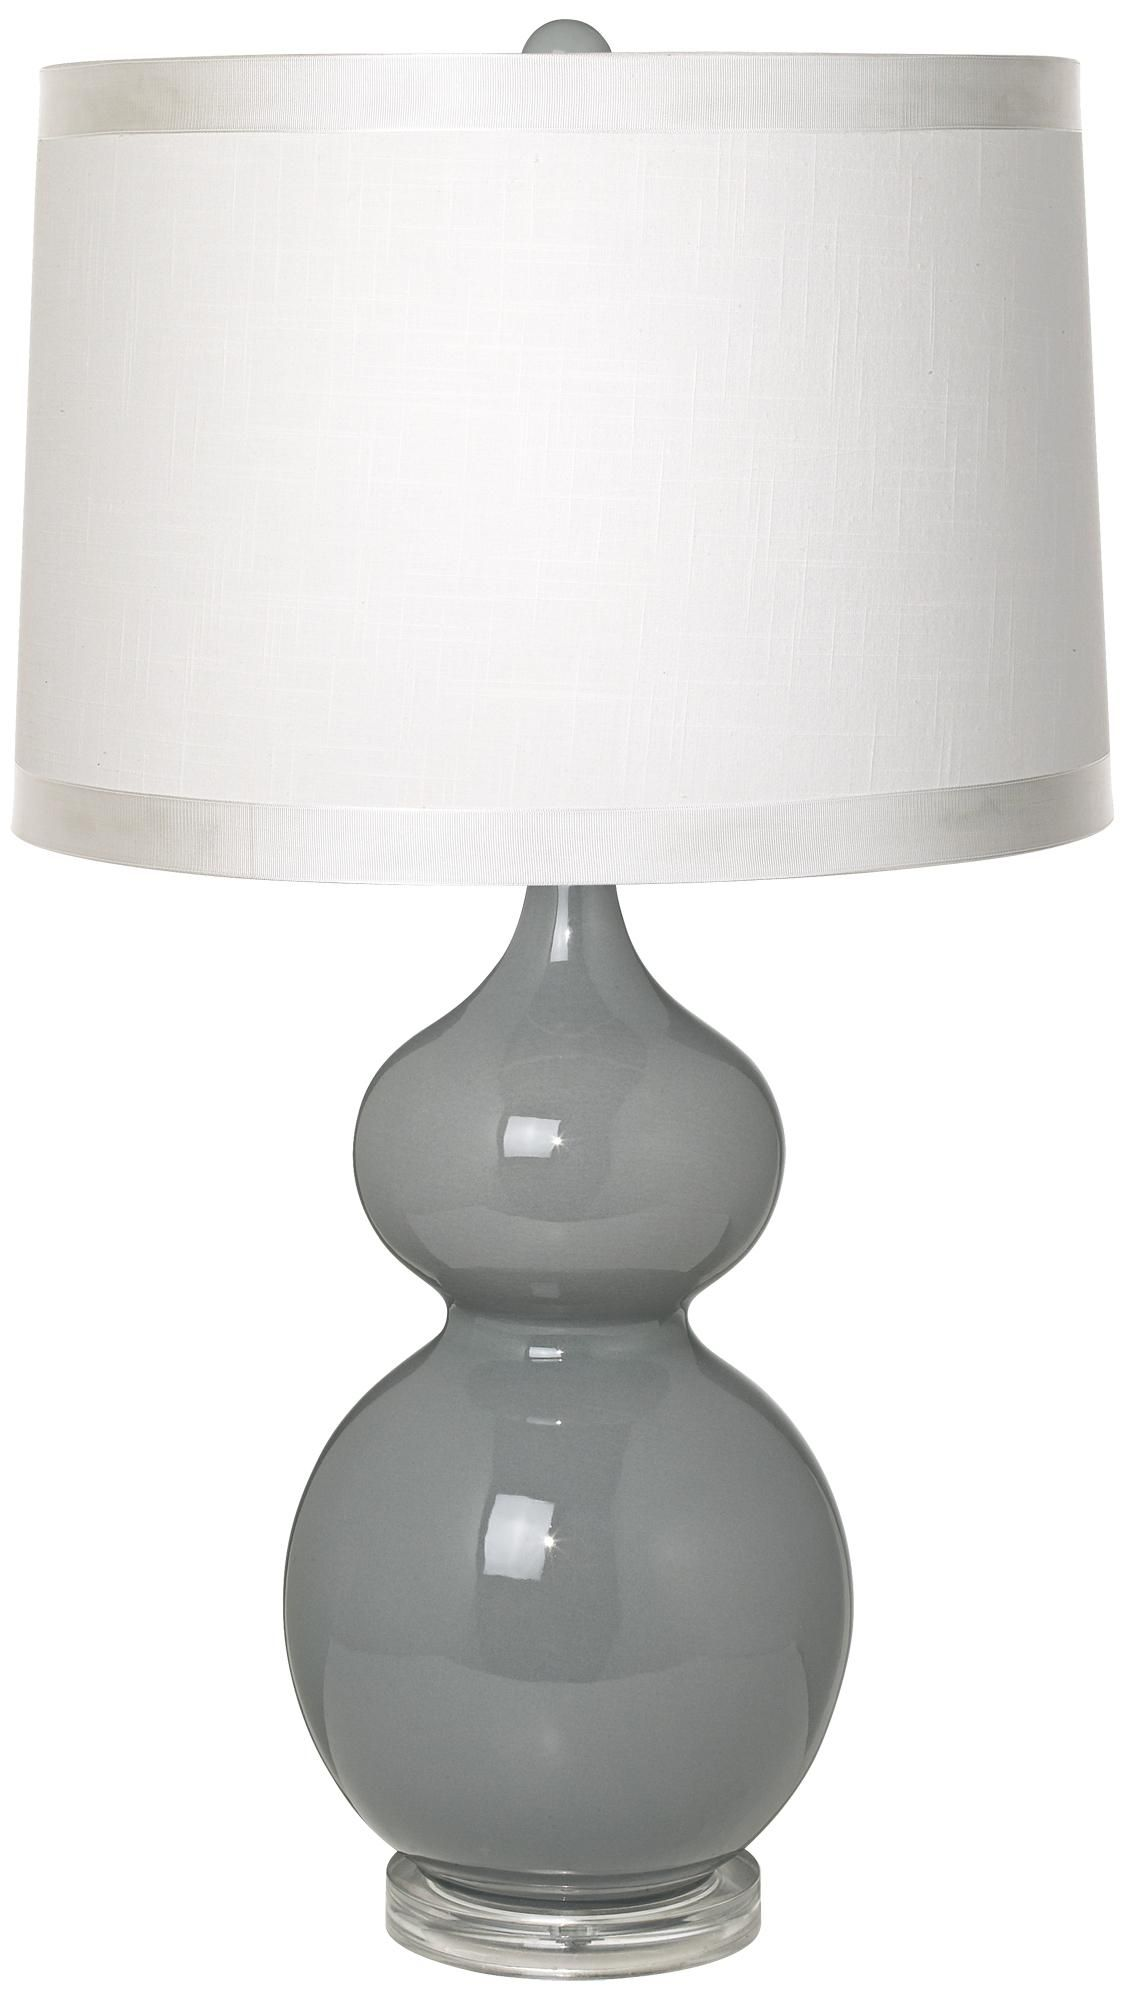 White Drum Shade Double Gourd Slate Grey Ceramic Table Lamp